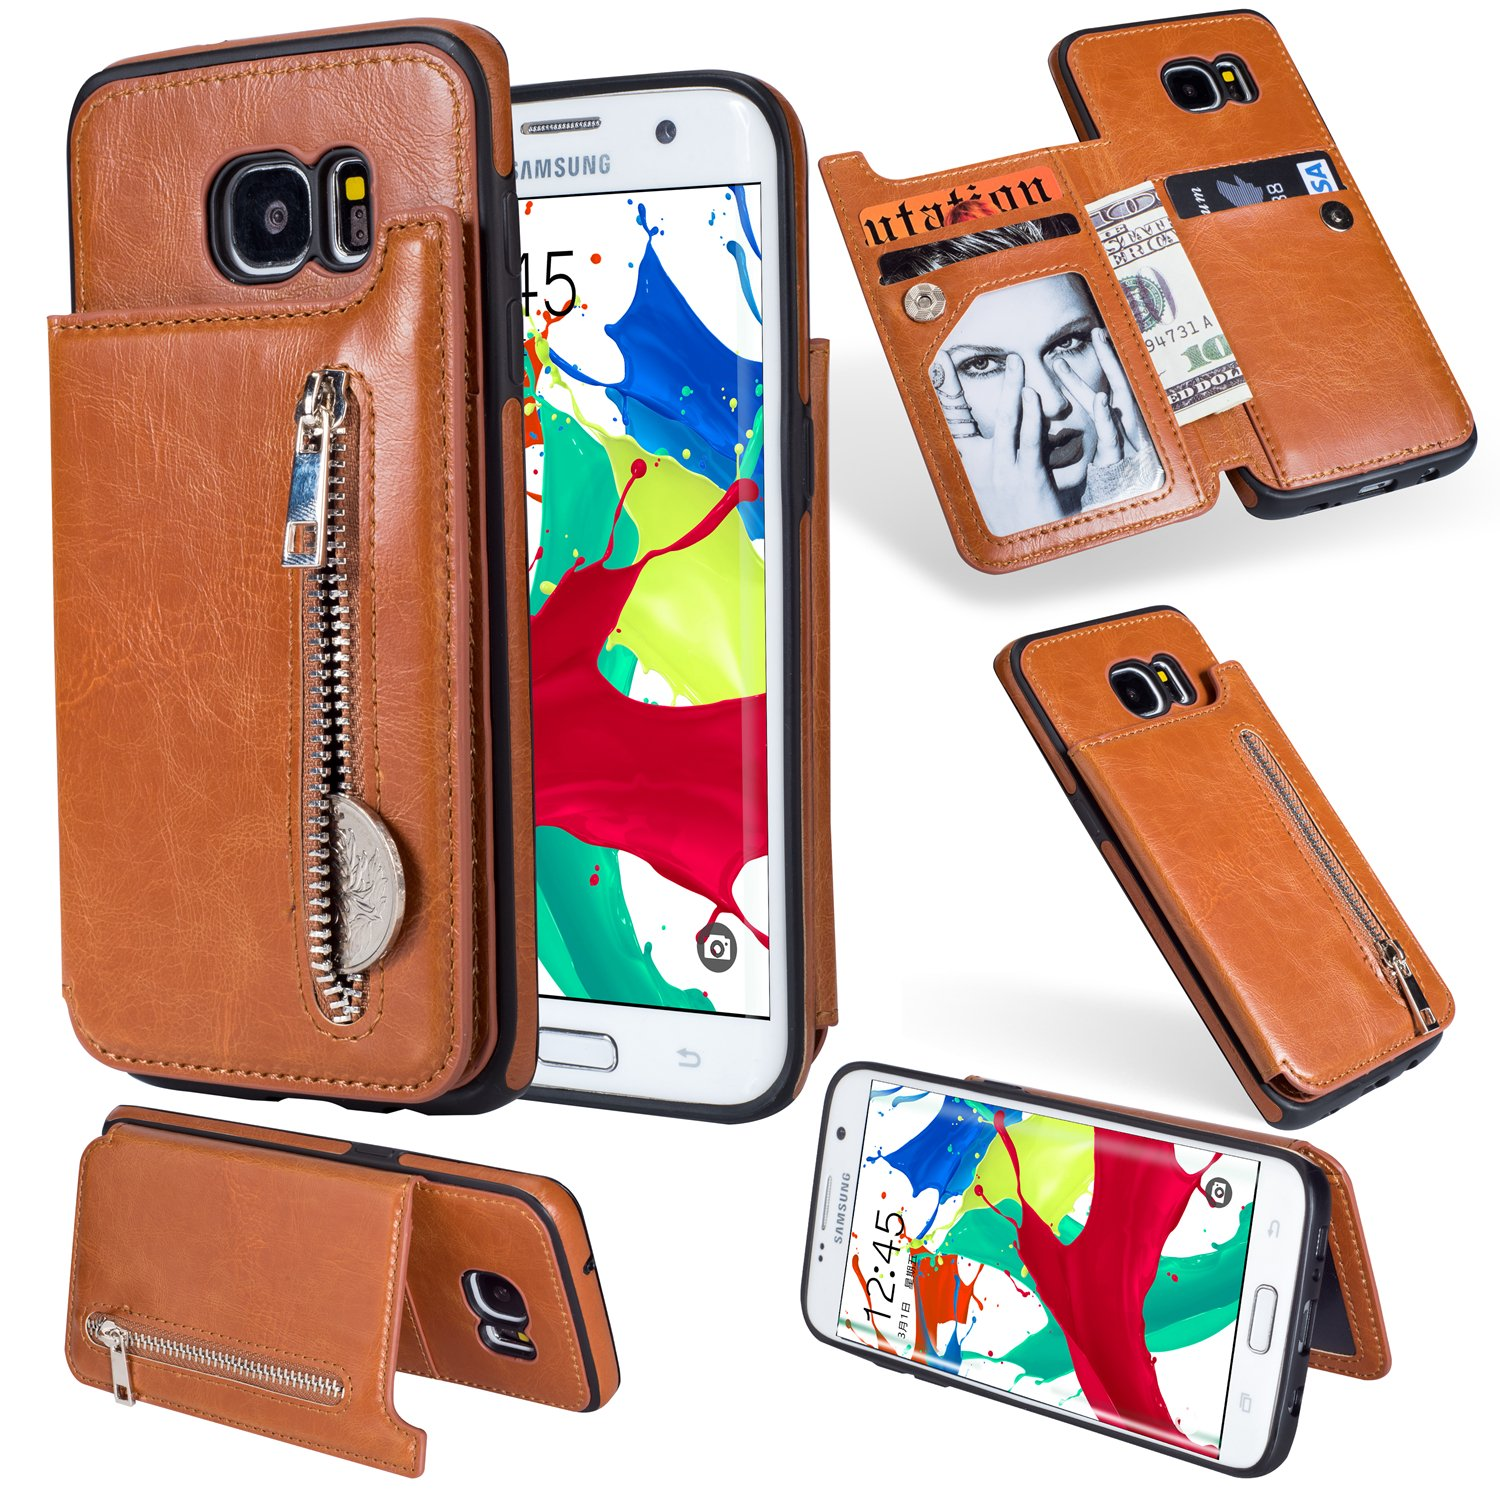 Ostop Wallet Case for Samsung Galaxy S7,Black PU Leather Stand Case, Credit Card Holder Zipper Purse Slim Fit Magnetic Clasp Flip Folio Cover with Cash Pocket Soft TPU Bumper Shell